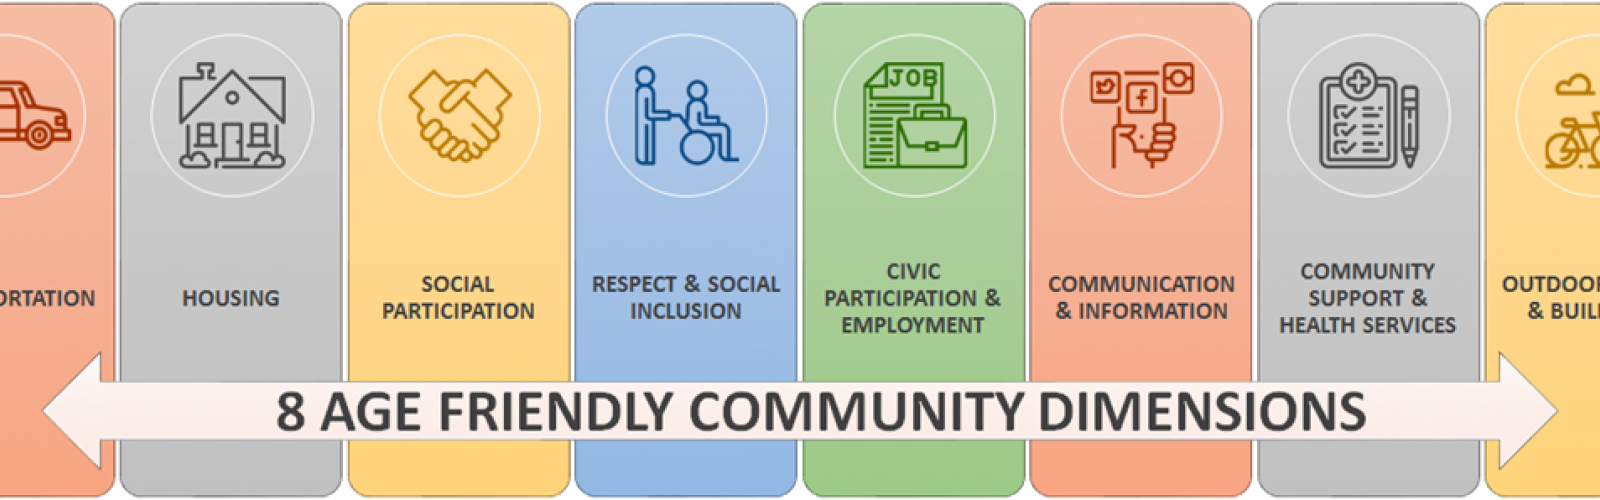 Age Friendly Community Dimensions